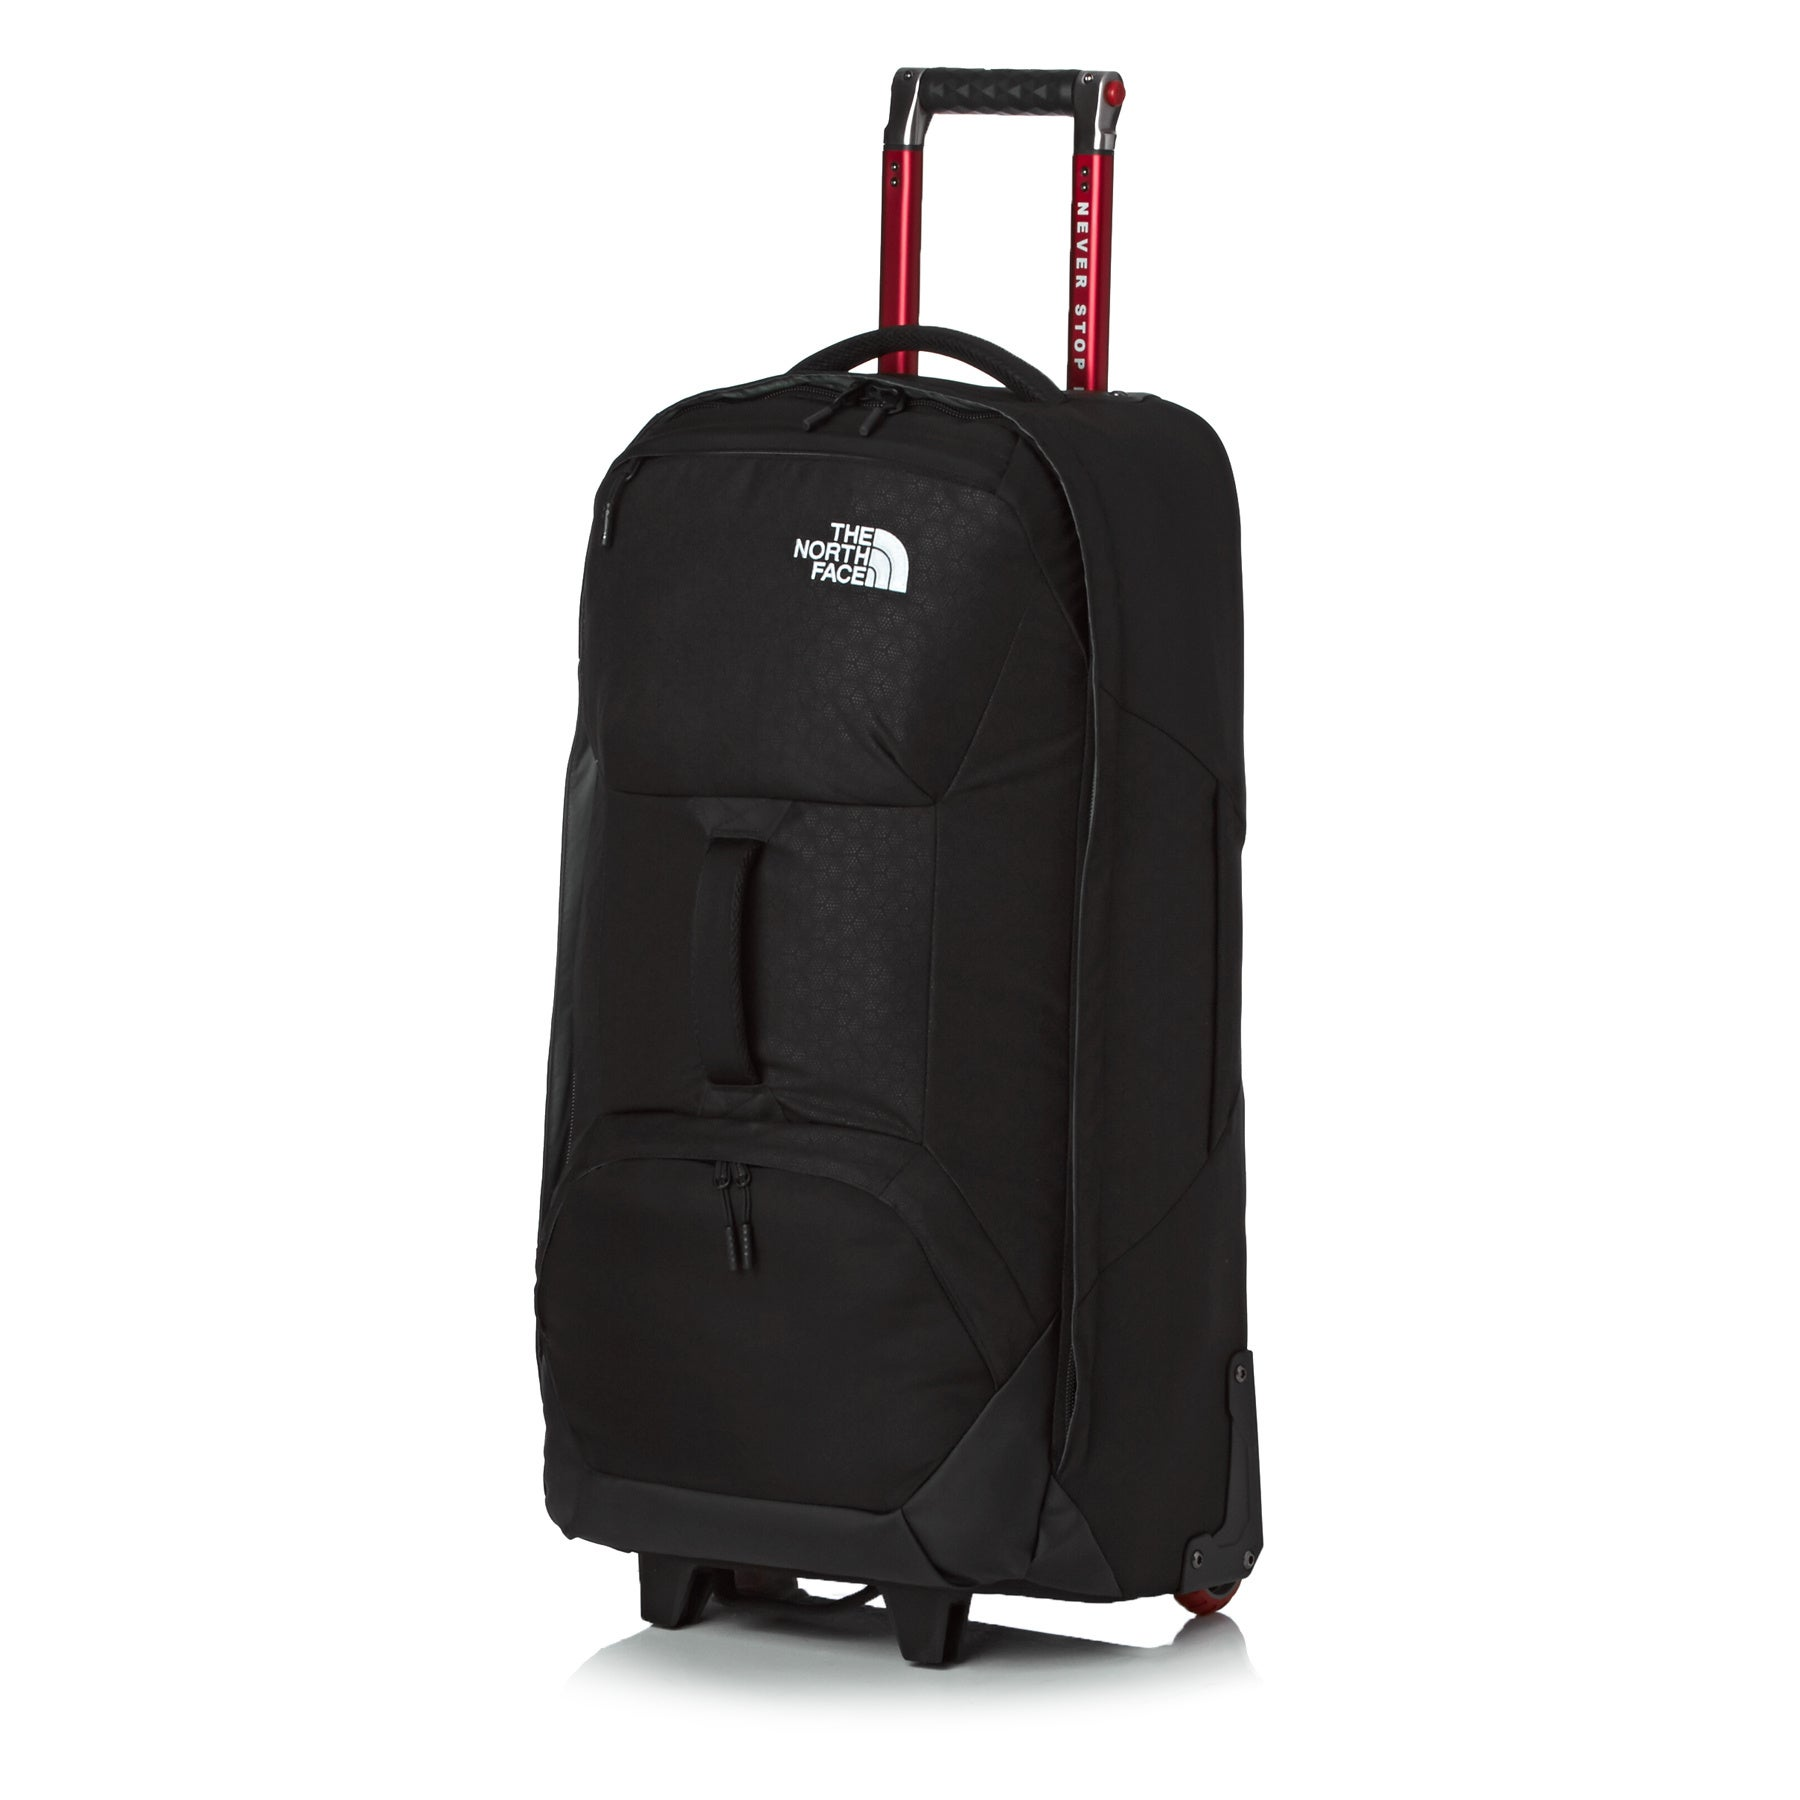 North Face Longhaul 30 Luggage - TNF Black